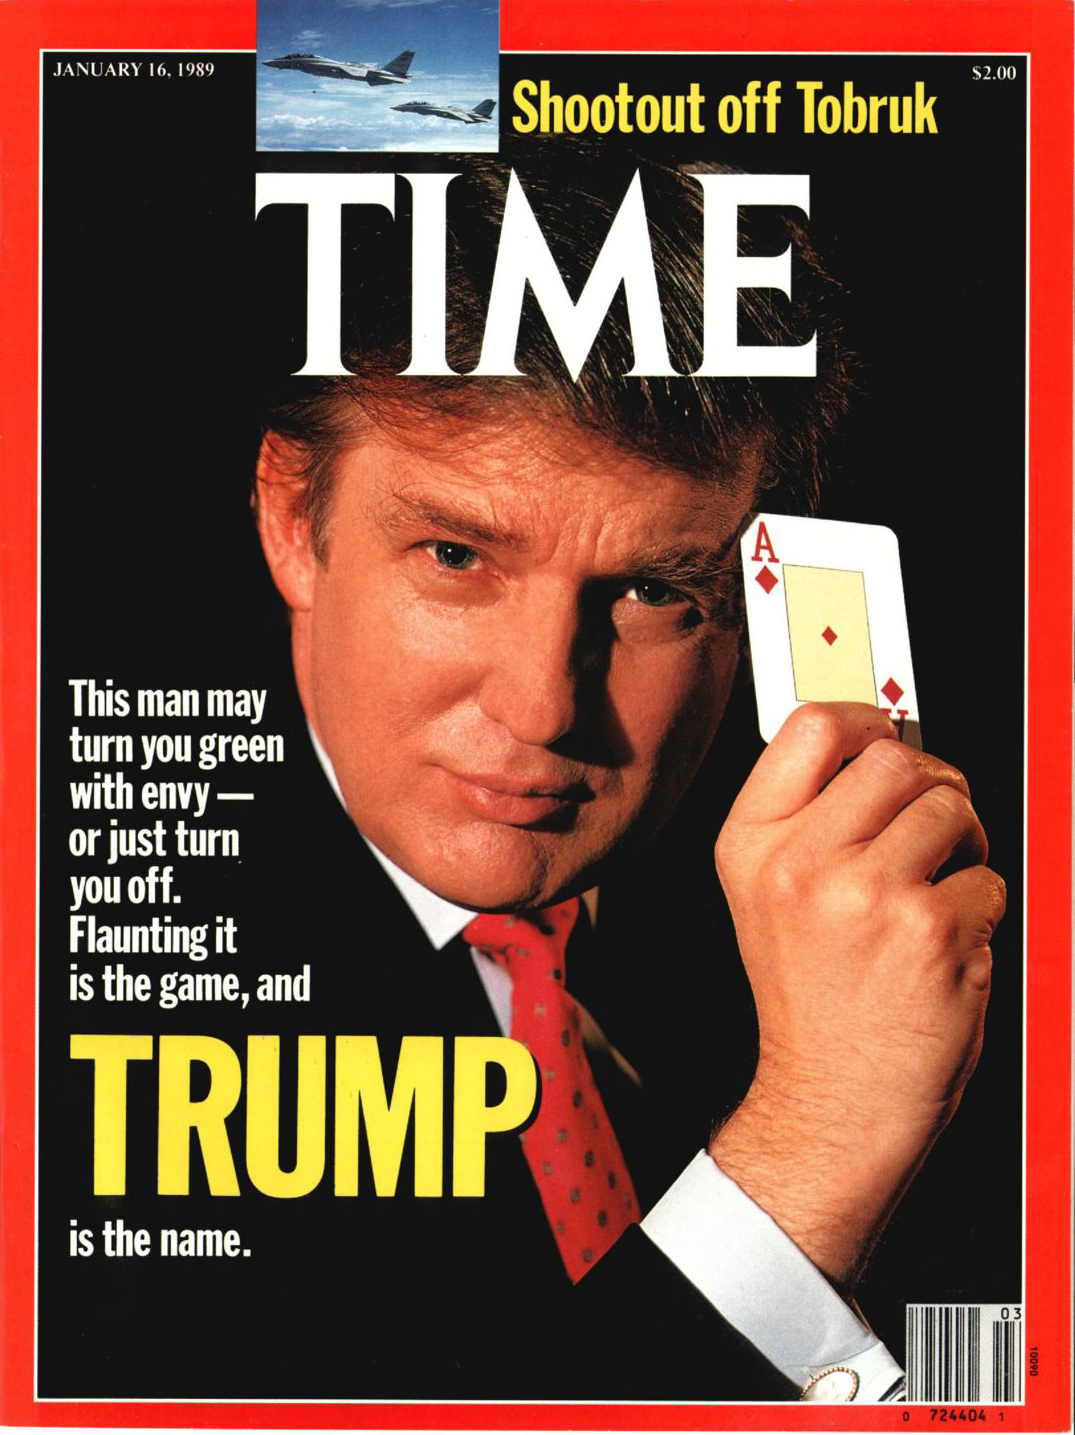 First TIME cover of Donald Trump from Jan. 16, 1989